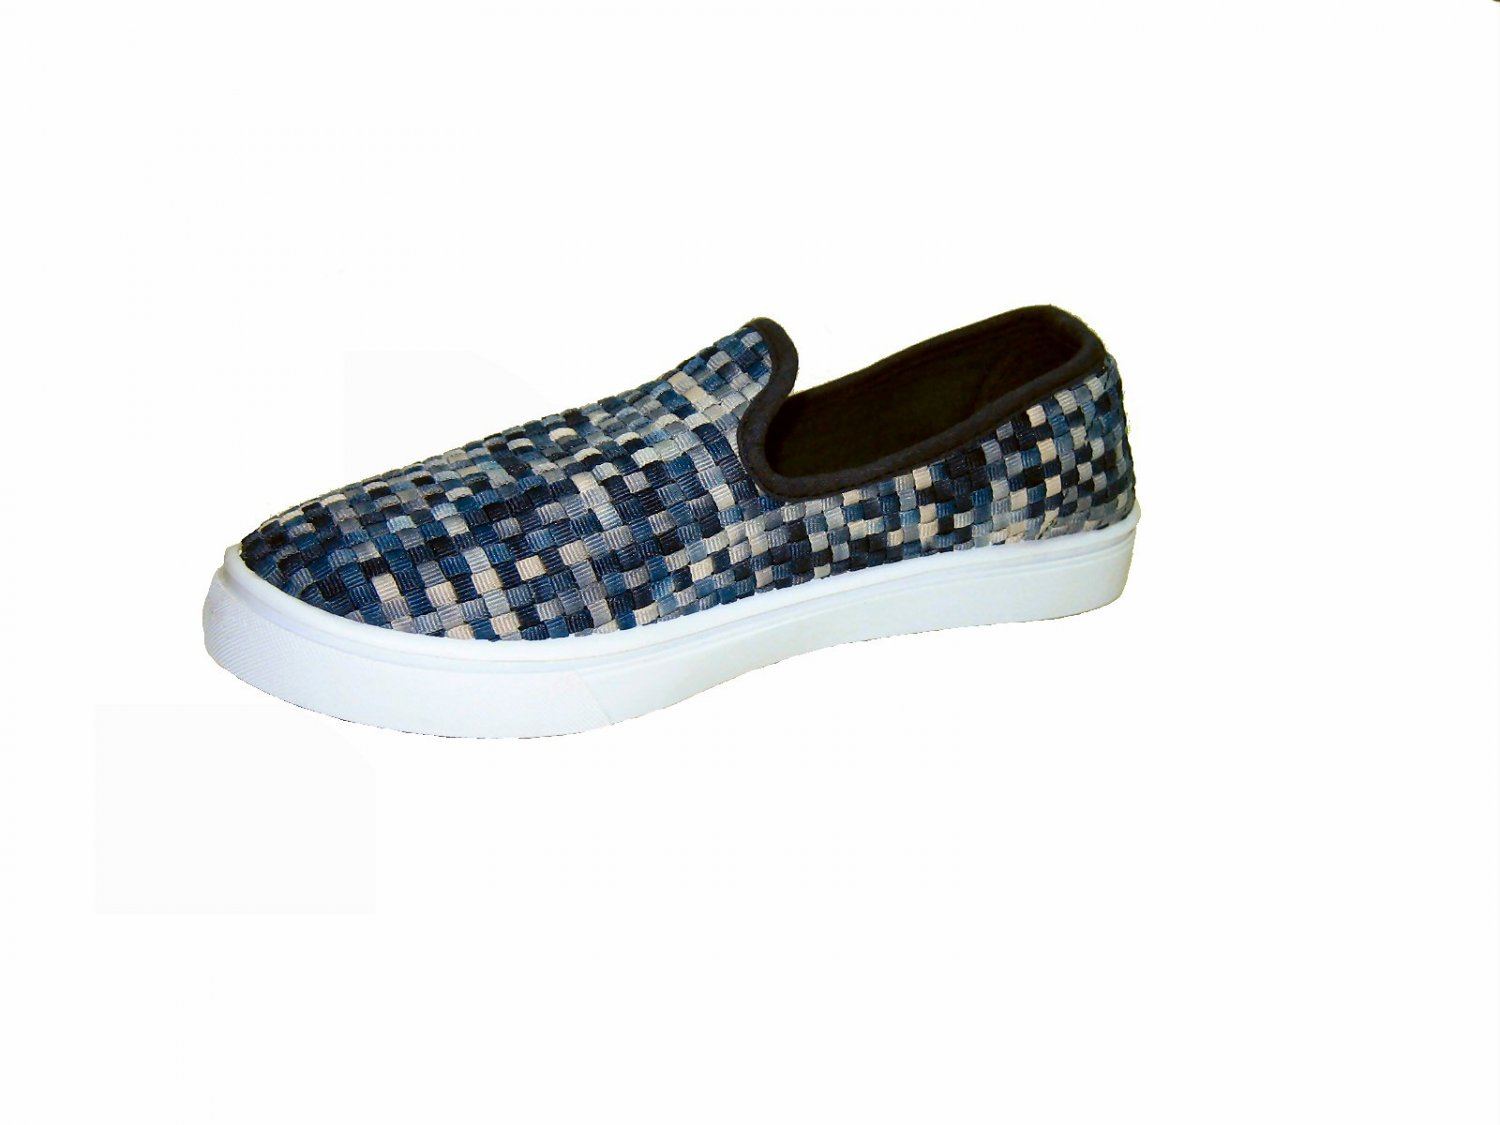 Top Moda AD-53 women's vegan slip on sneakers comfort flats shoes weave pattern navy multi size 8